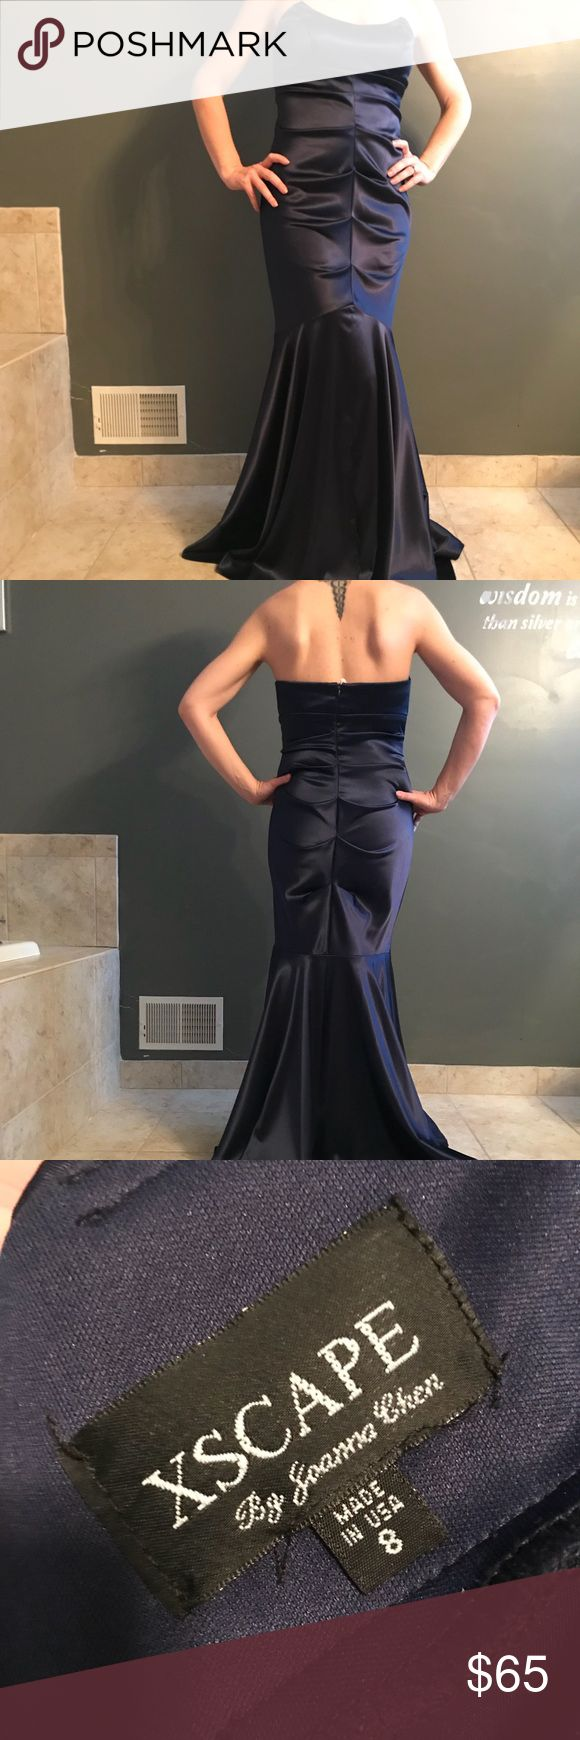 👗NEW ITEM👗 Strapless Navy Xscape Evening Gown This dress is an Xscape by Joanna Chen and is quite stunning. It was worn once and has not been altered. The slimming effects hugs all of the right curves and gives the trumpet-style look. EUC; smoke free home! Xscape Dresses Strapless